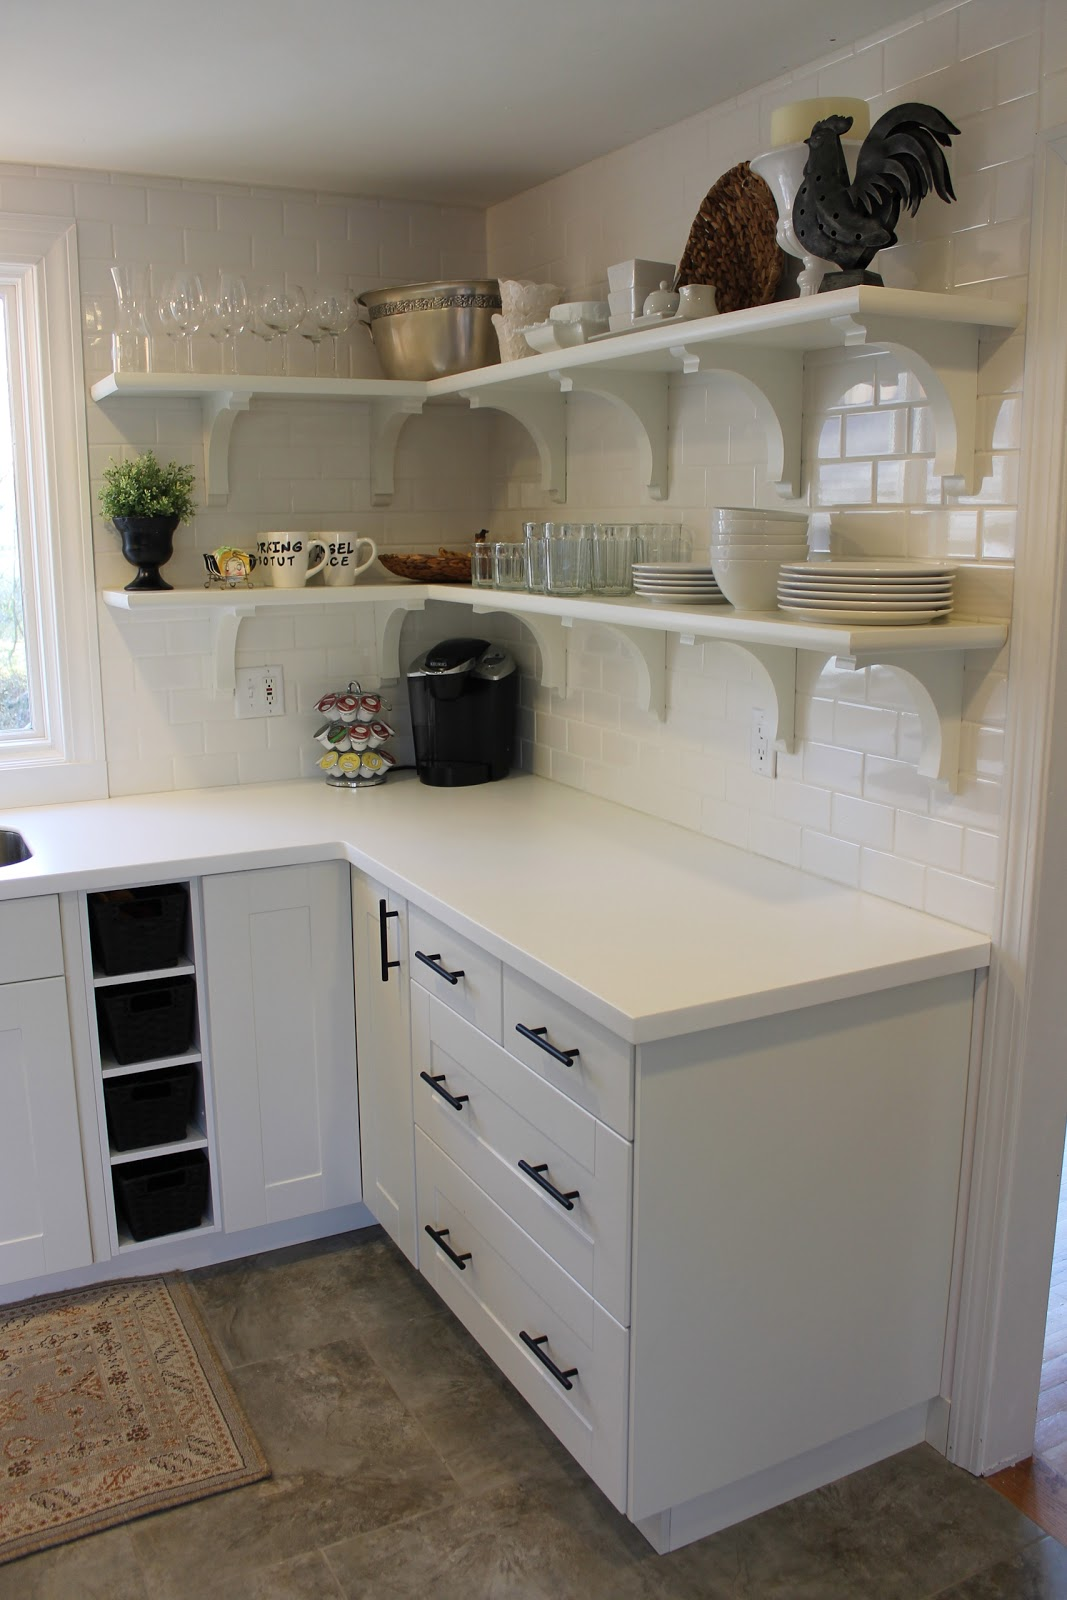 IKEA Adel White Kitchen